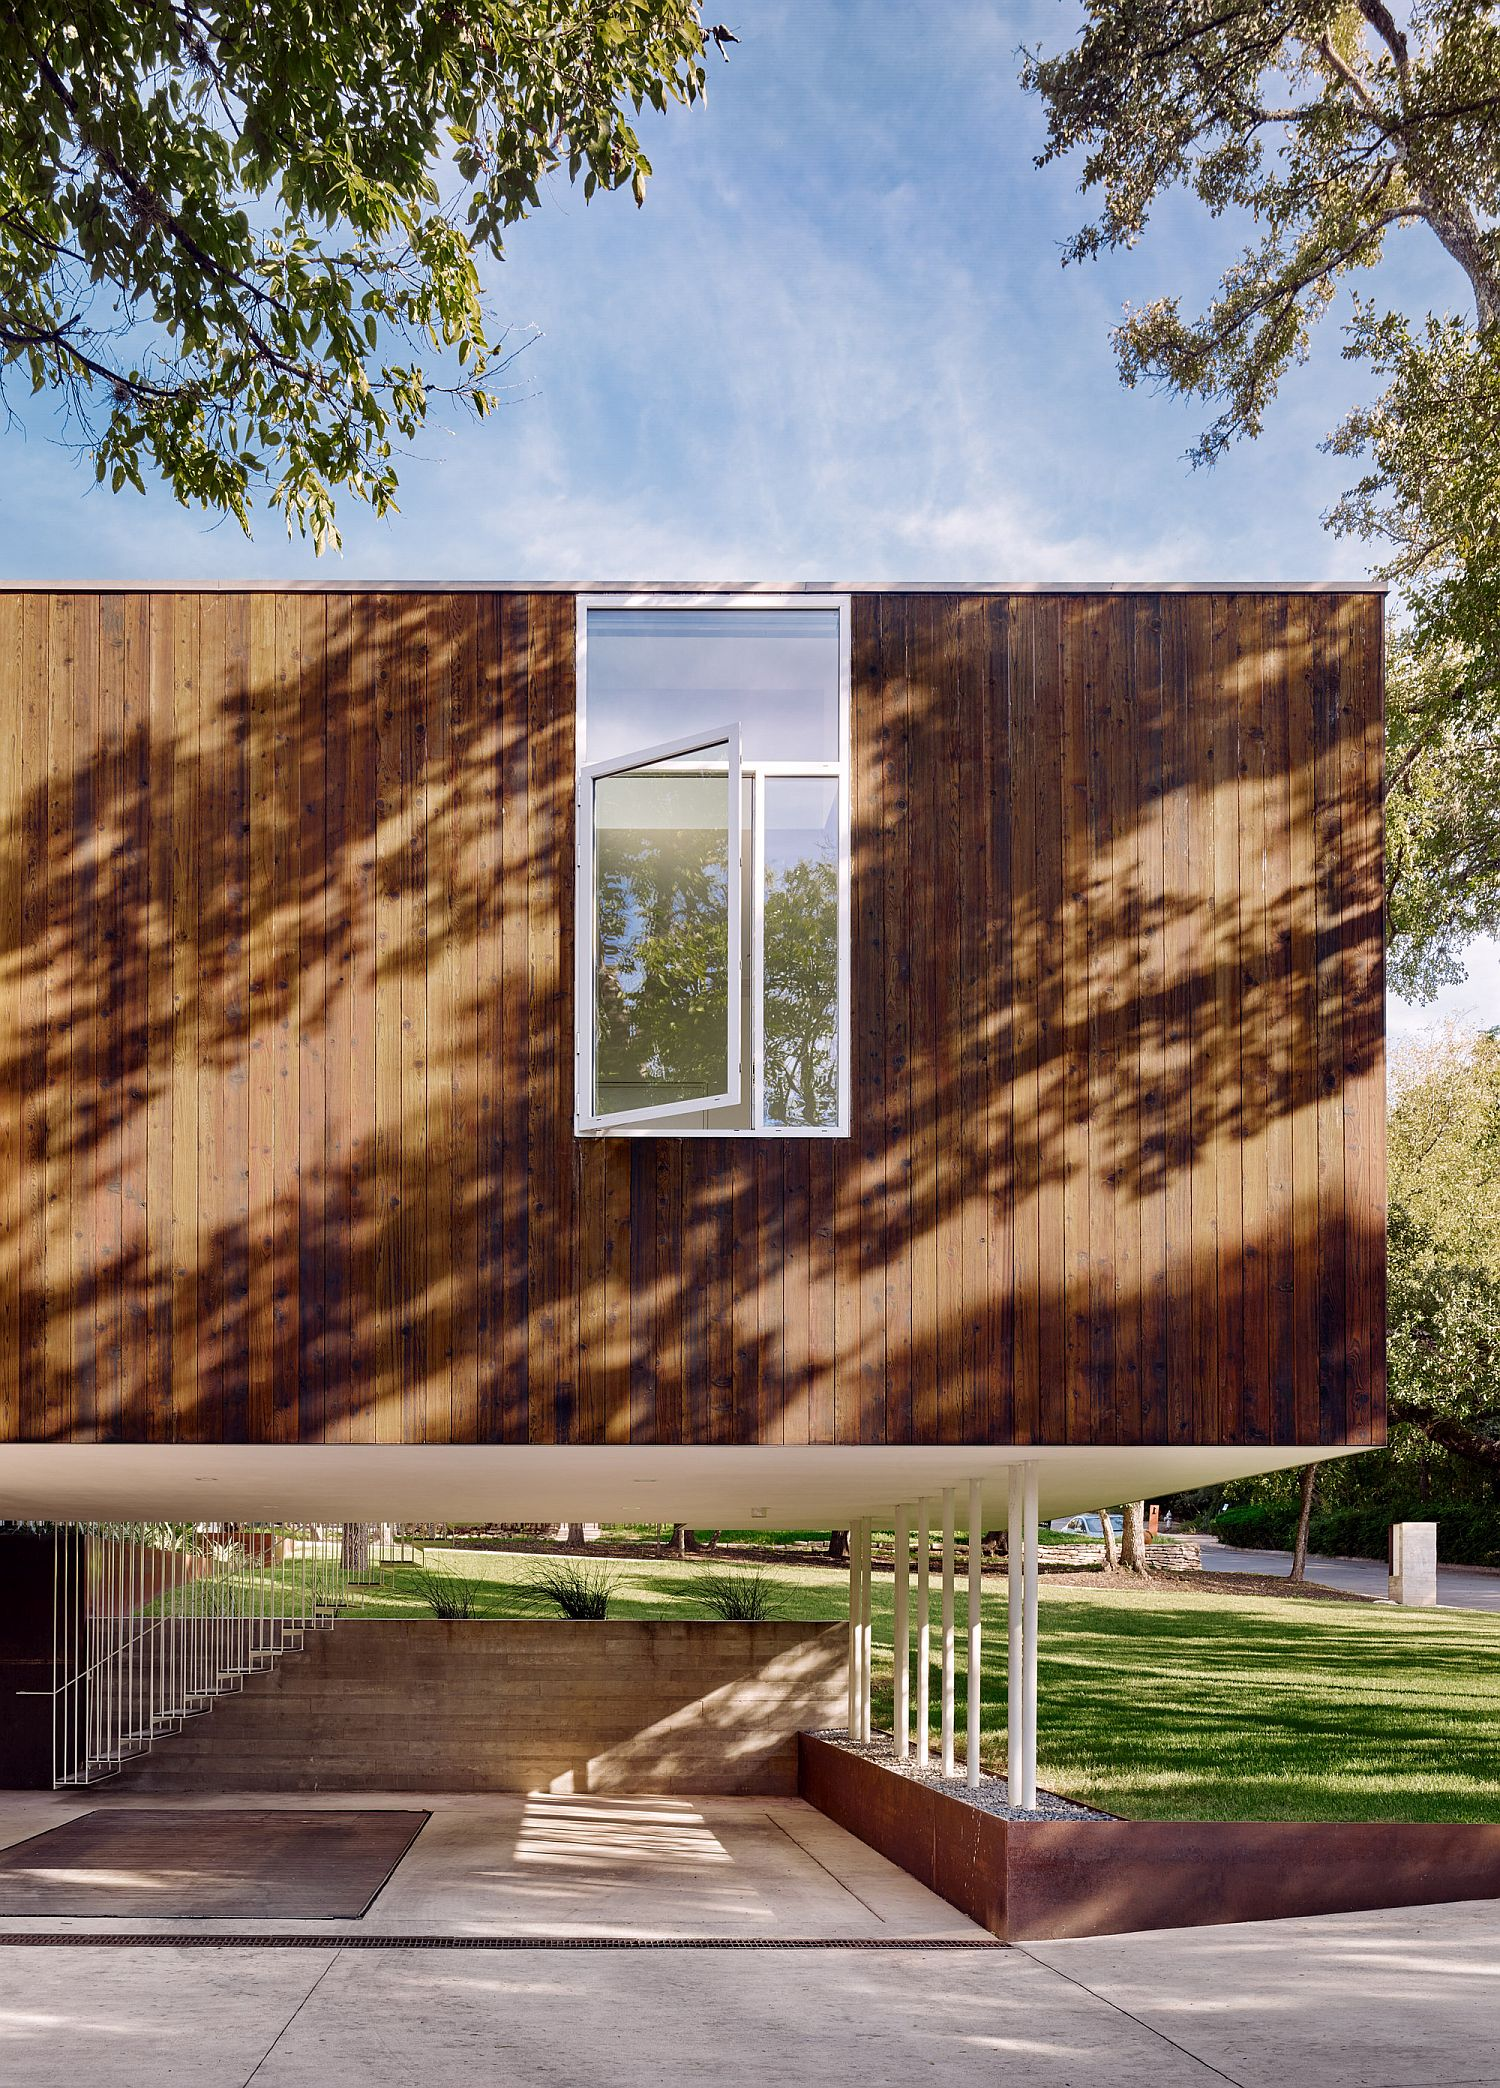 Cantilevered entry to the Sugar Shack Residence